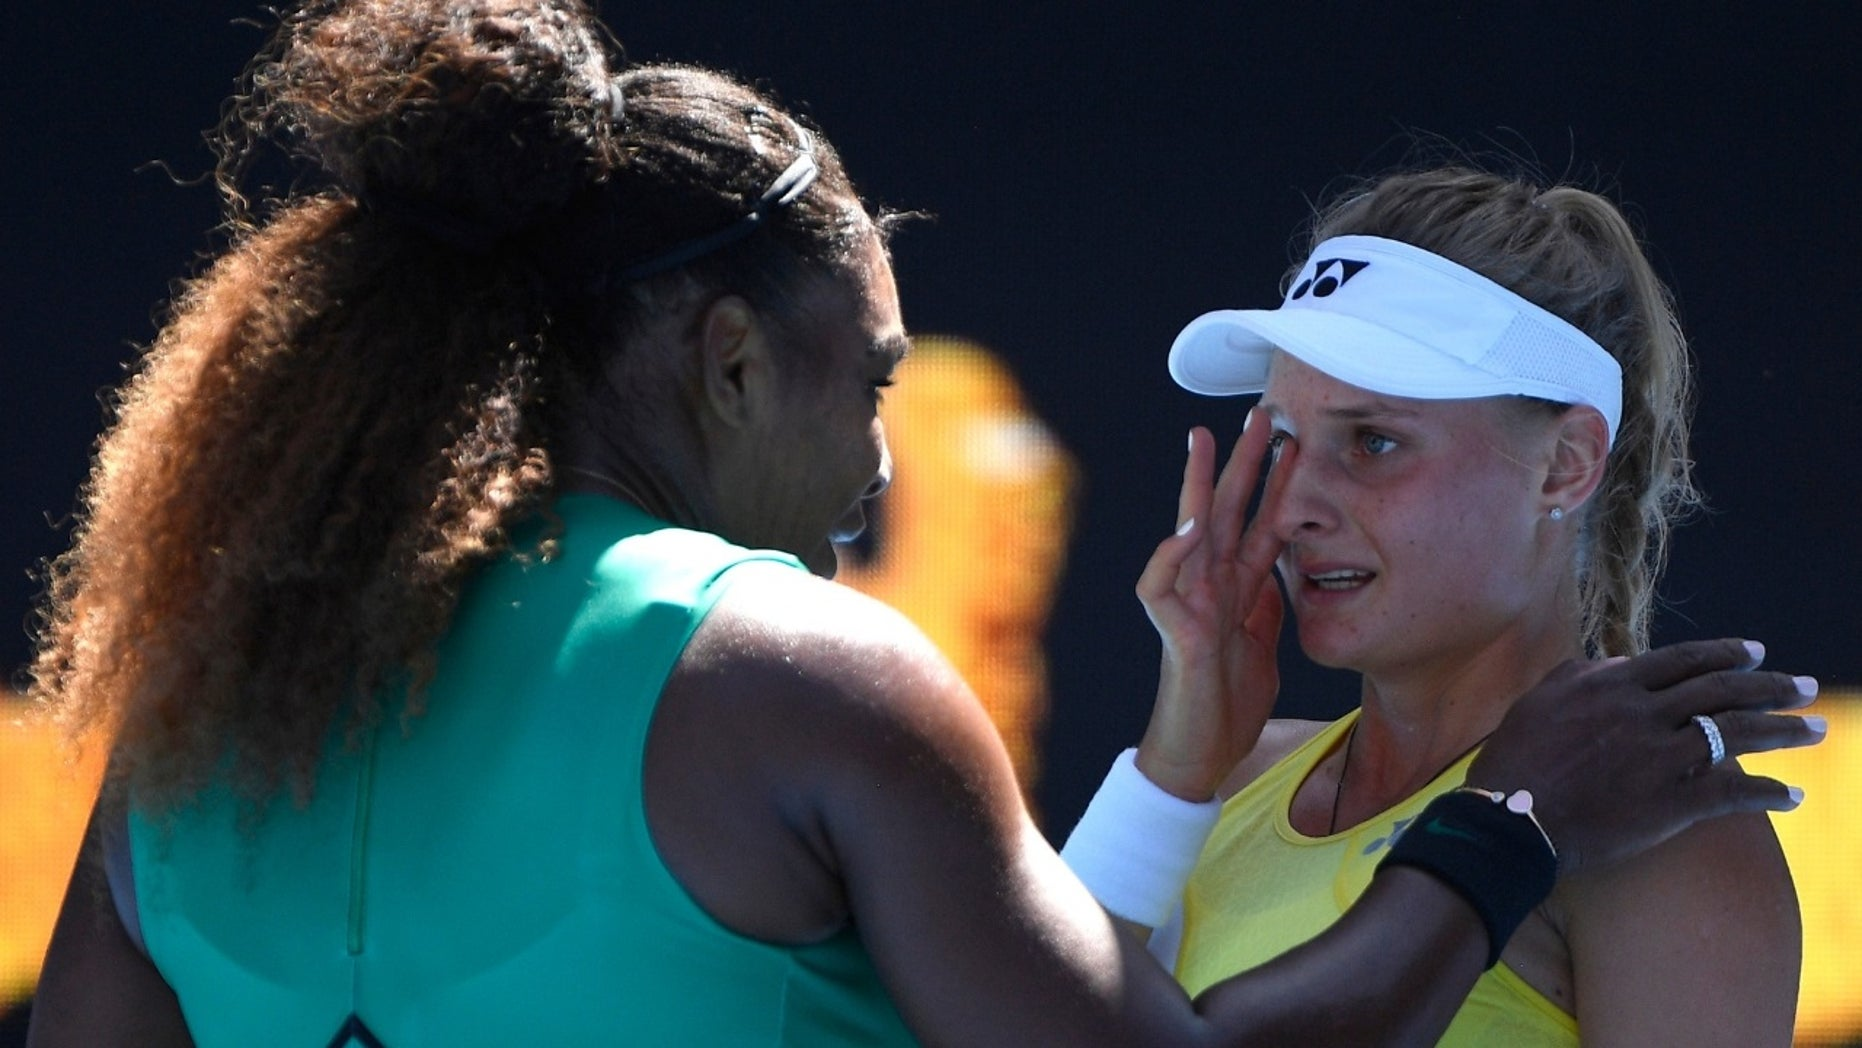 'Don't cry, you're still young': Williams comforts teen after thumping